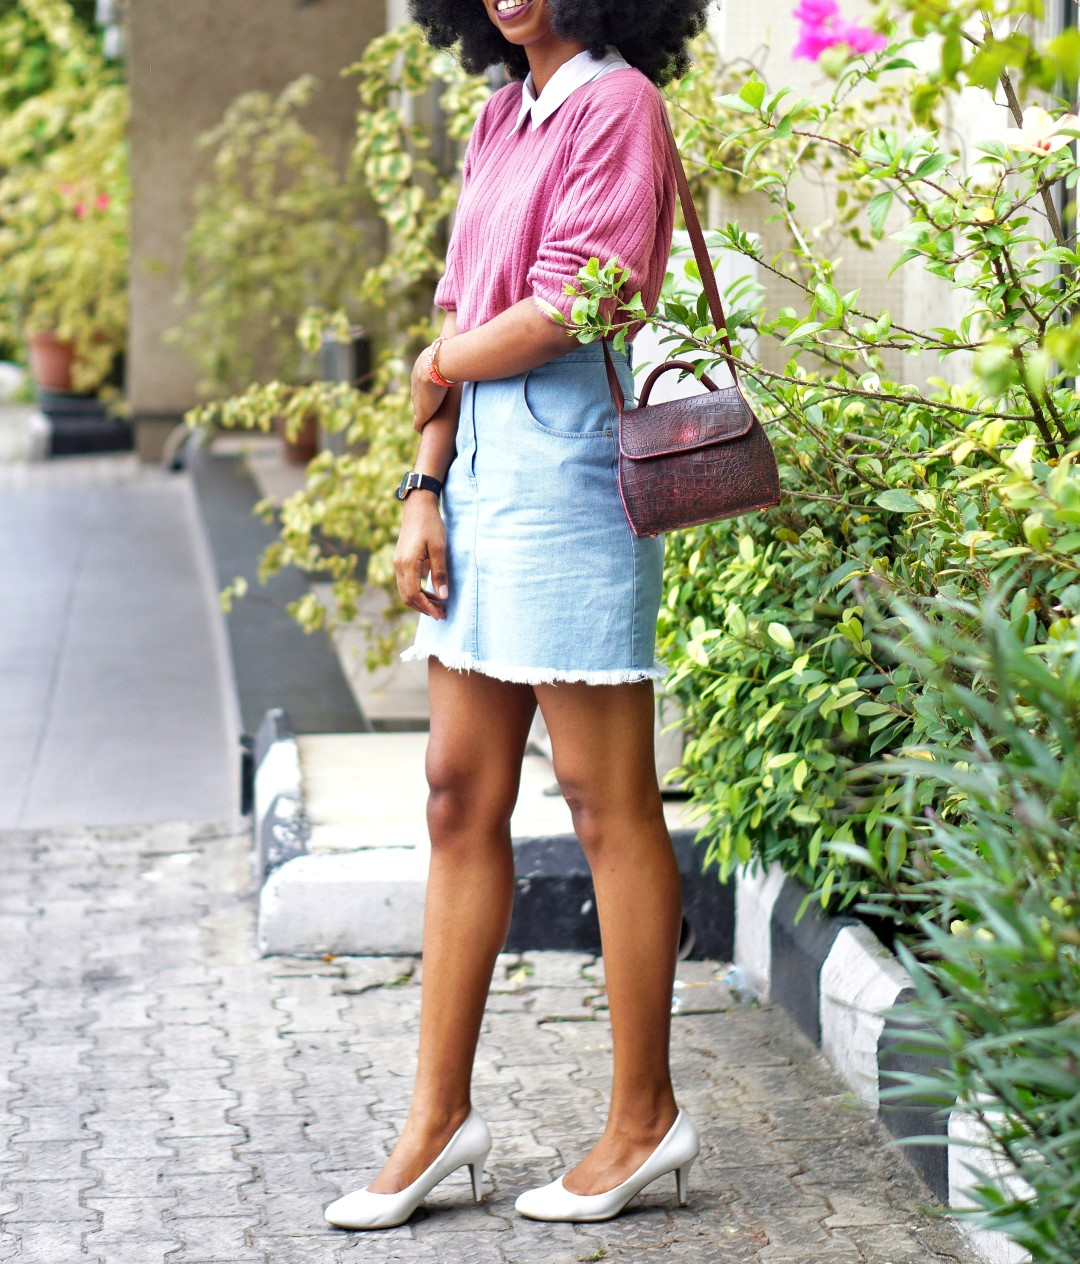 nigerian fashion and lifestyle blogger Cassie daves wearing a denim mini skirt, and white court shoes